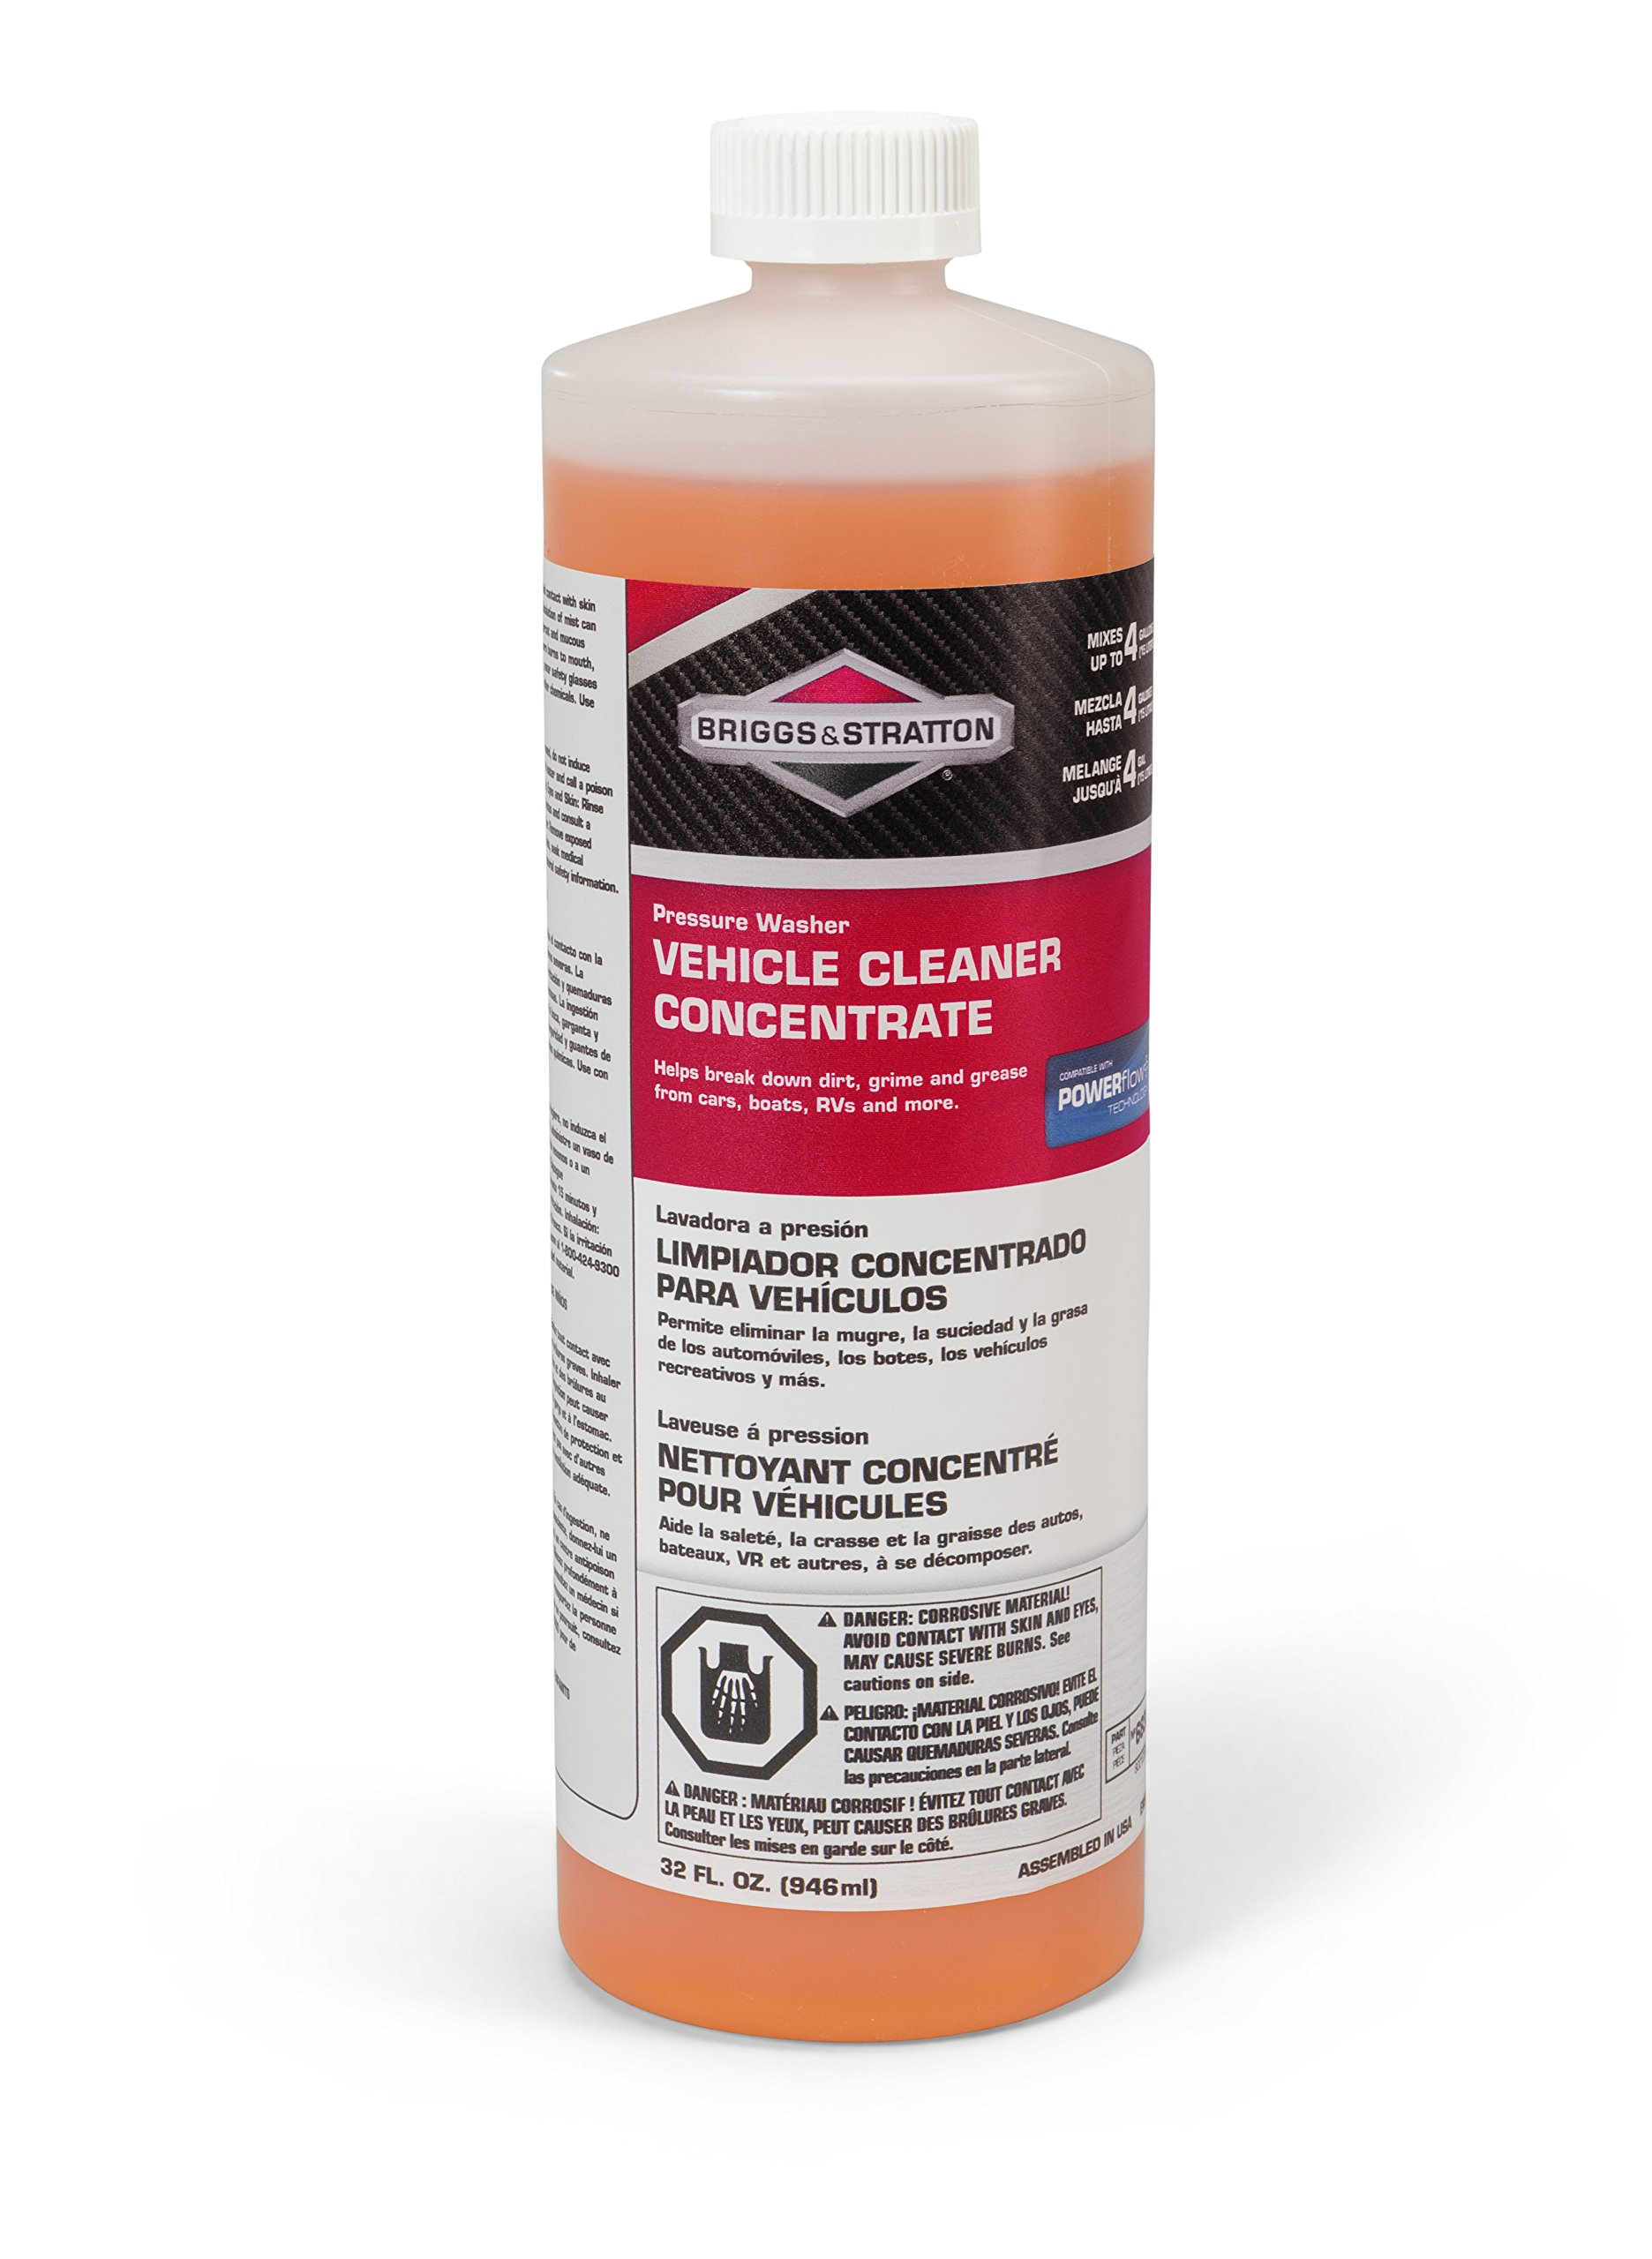 Briggs & Stratton Power Products 6830 Vehicle Cleaner Pressure Washer Concentrate, 32 oz